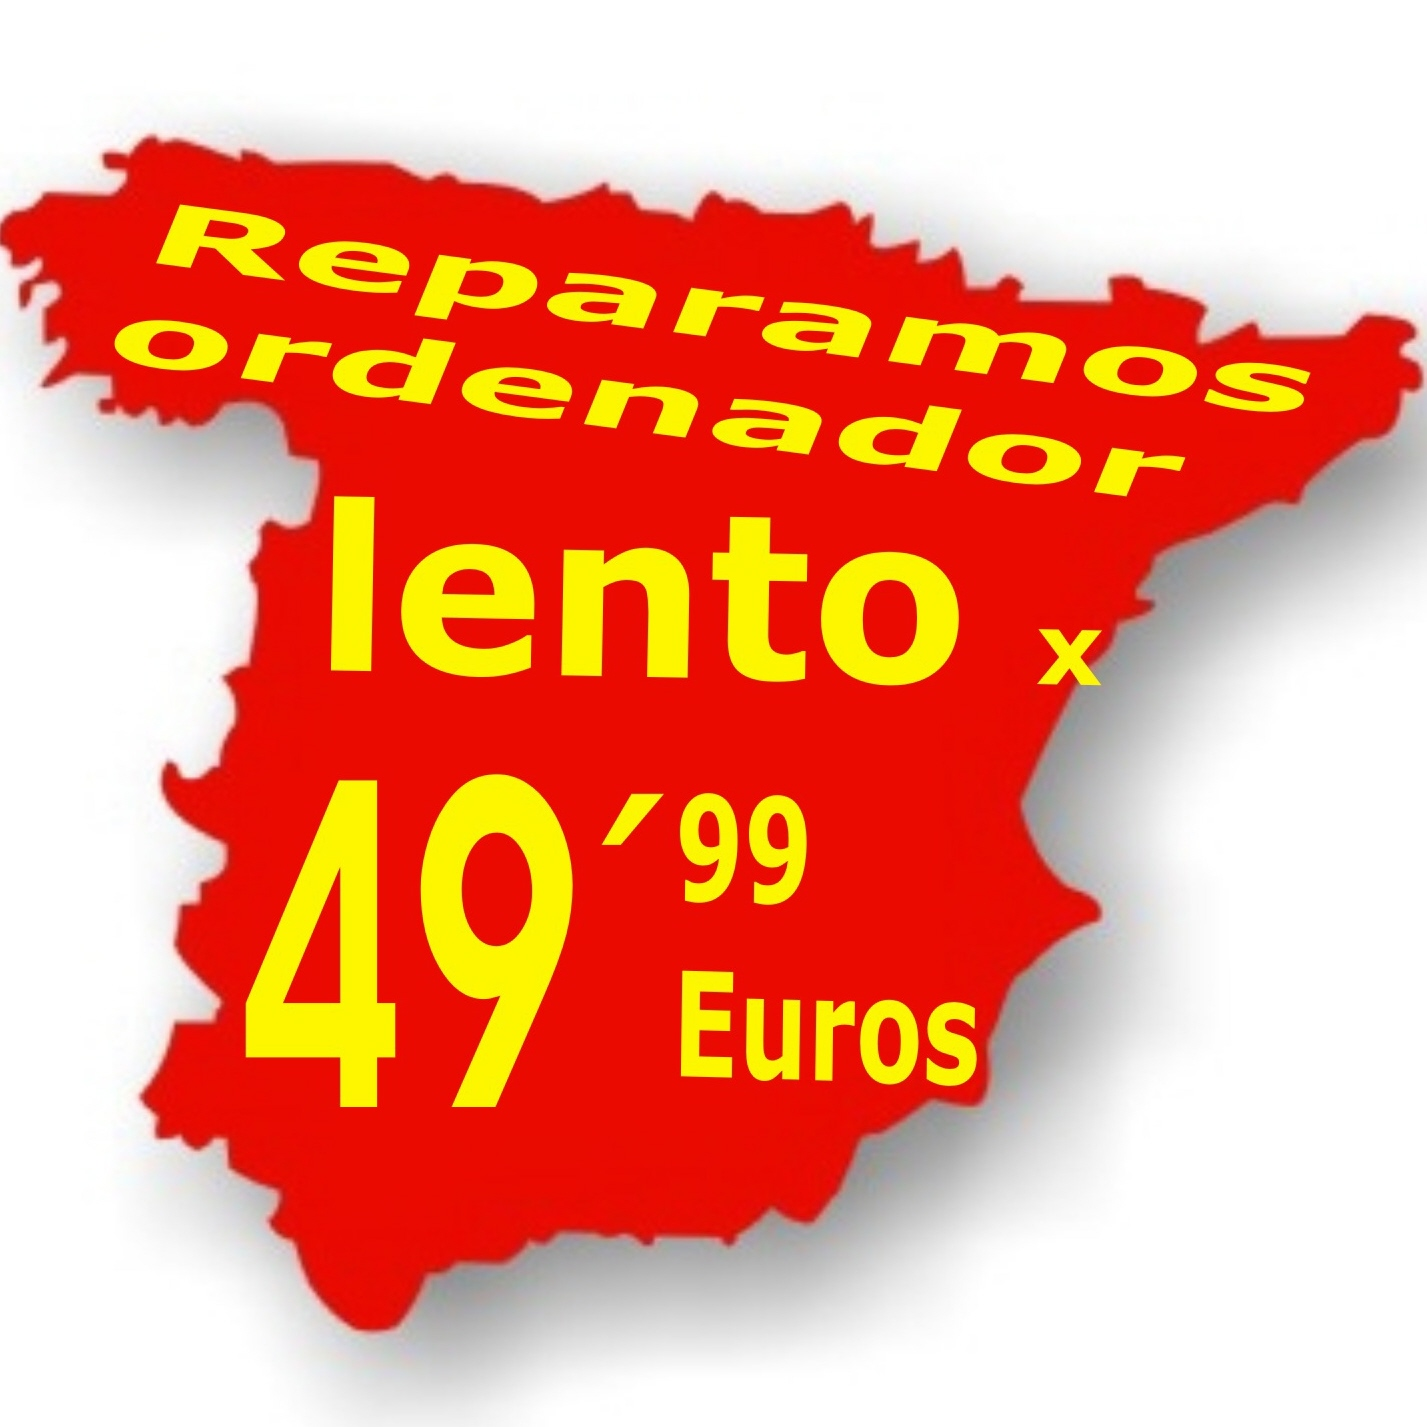 reparar cancelar-quitar-virus-ordenador-lento-en-madrid-carretera-de-navalcarnero-chinchon-el-alamo-barcelona-valencia-jaen-arreglar-windows-xp-vista-7-8-10-acelerar-internet-optimizar-portatil-limpiar-pc